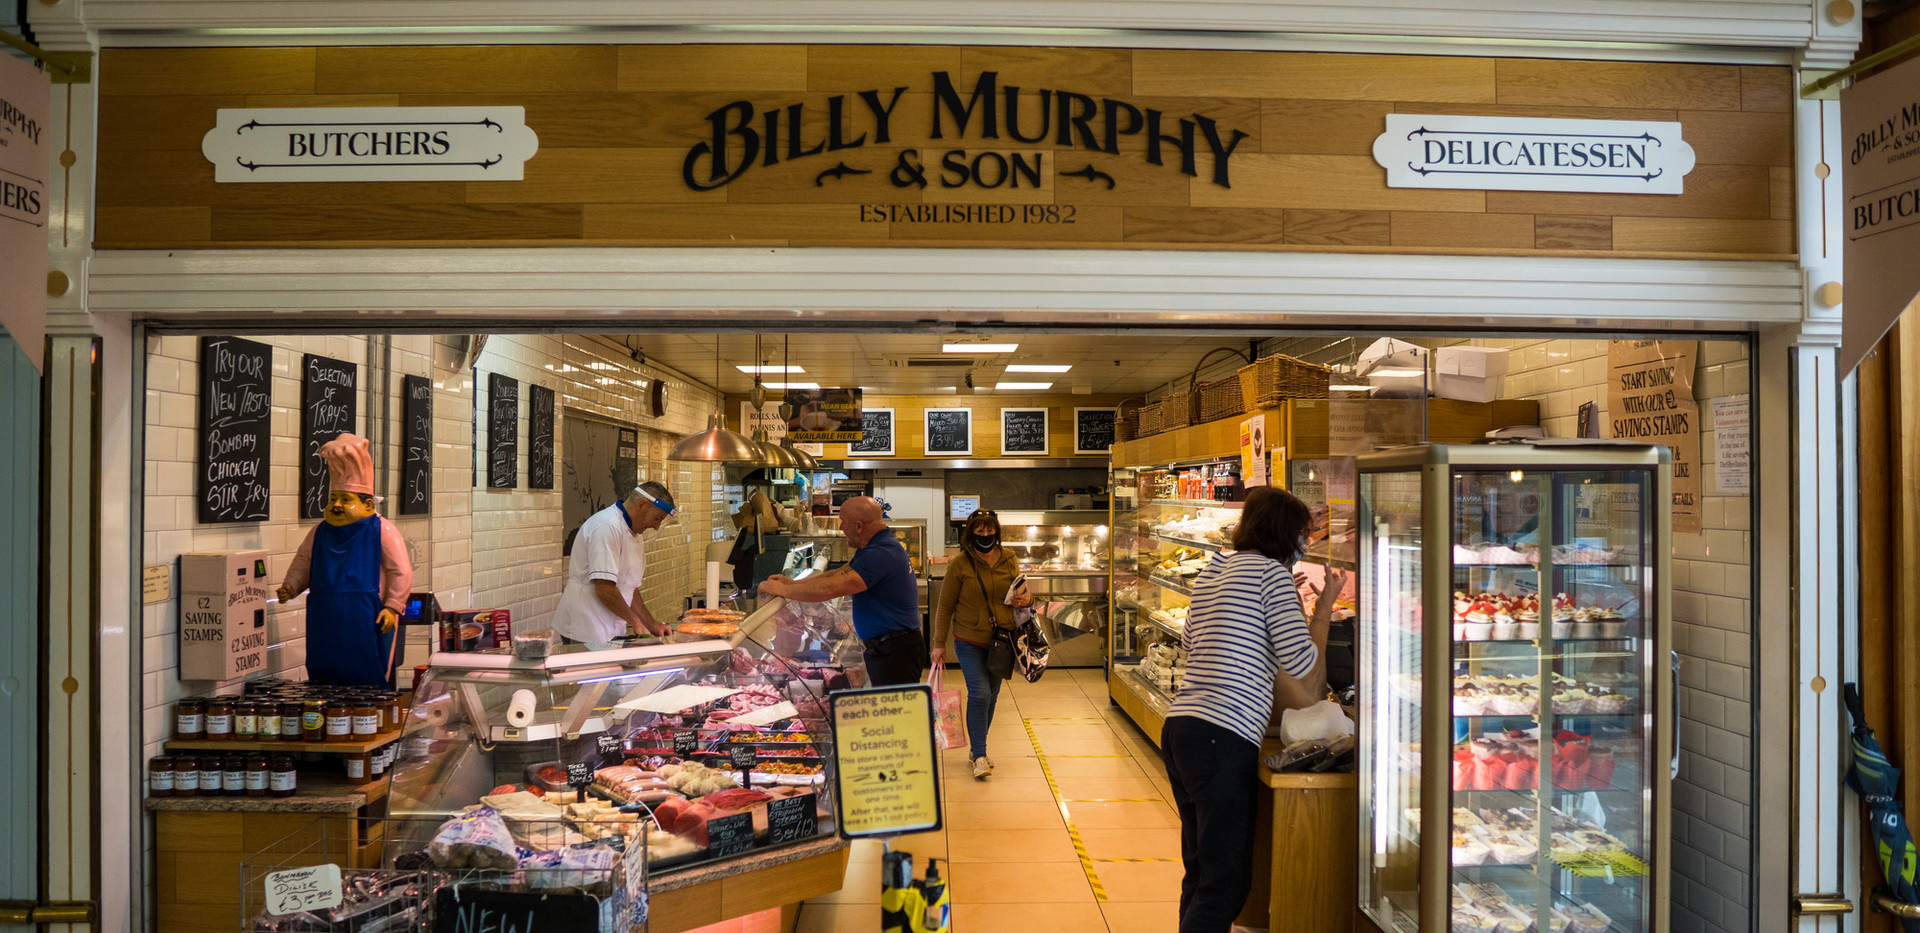 Billy Murphys